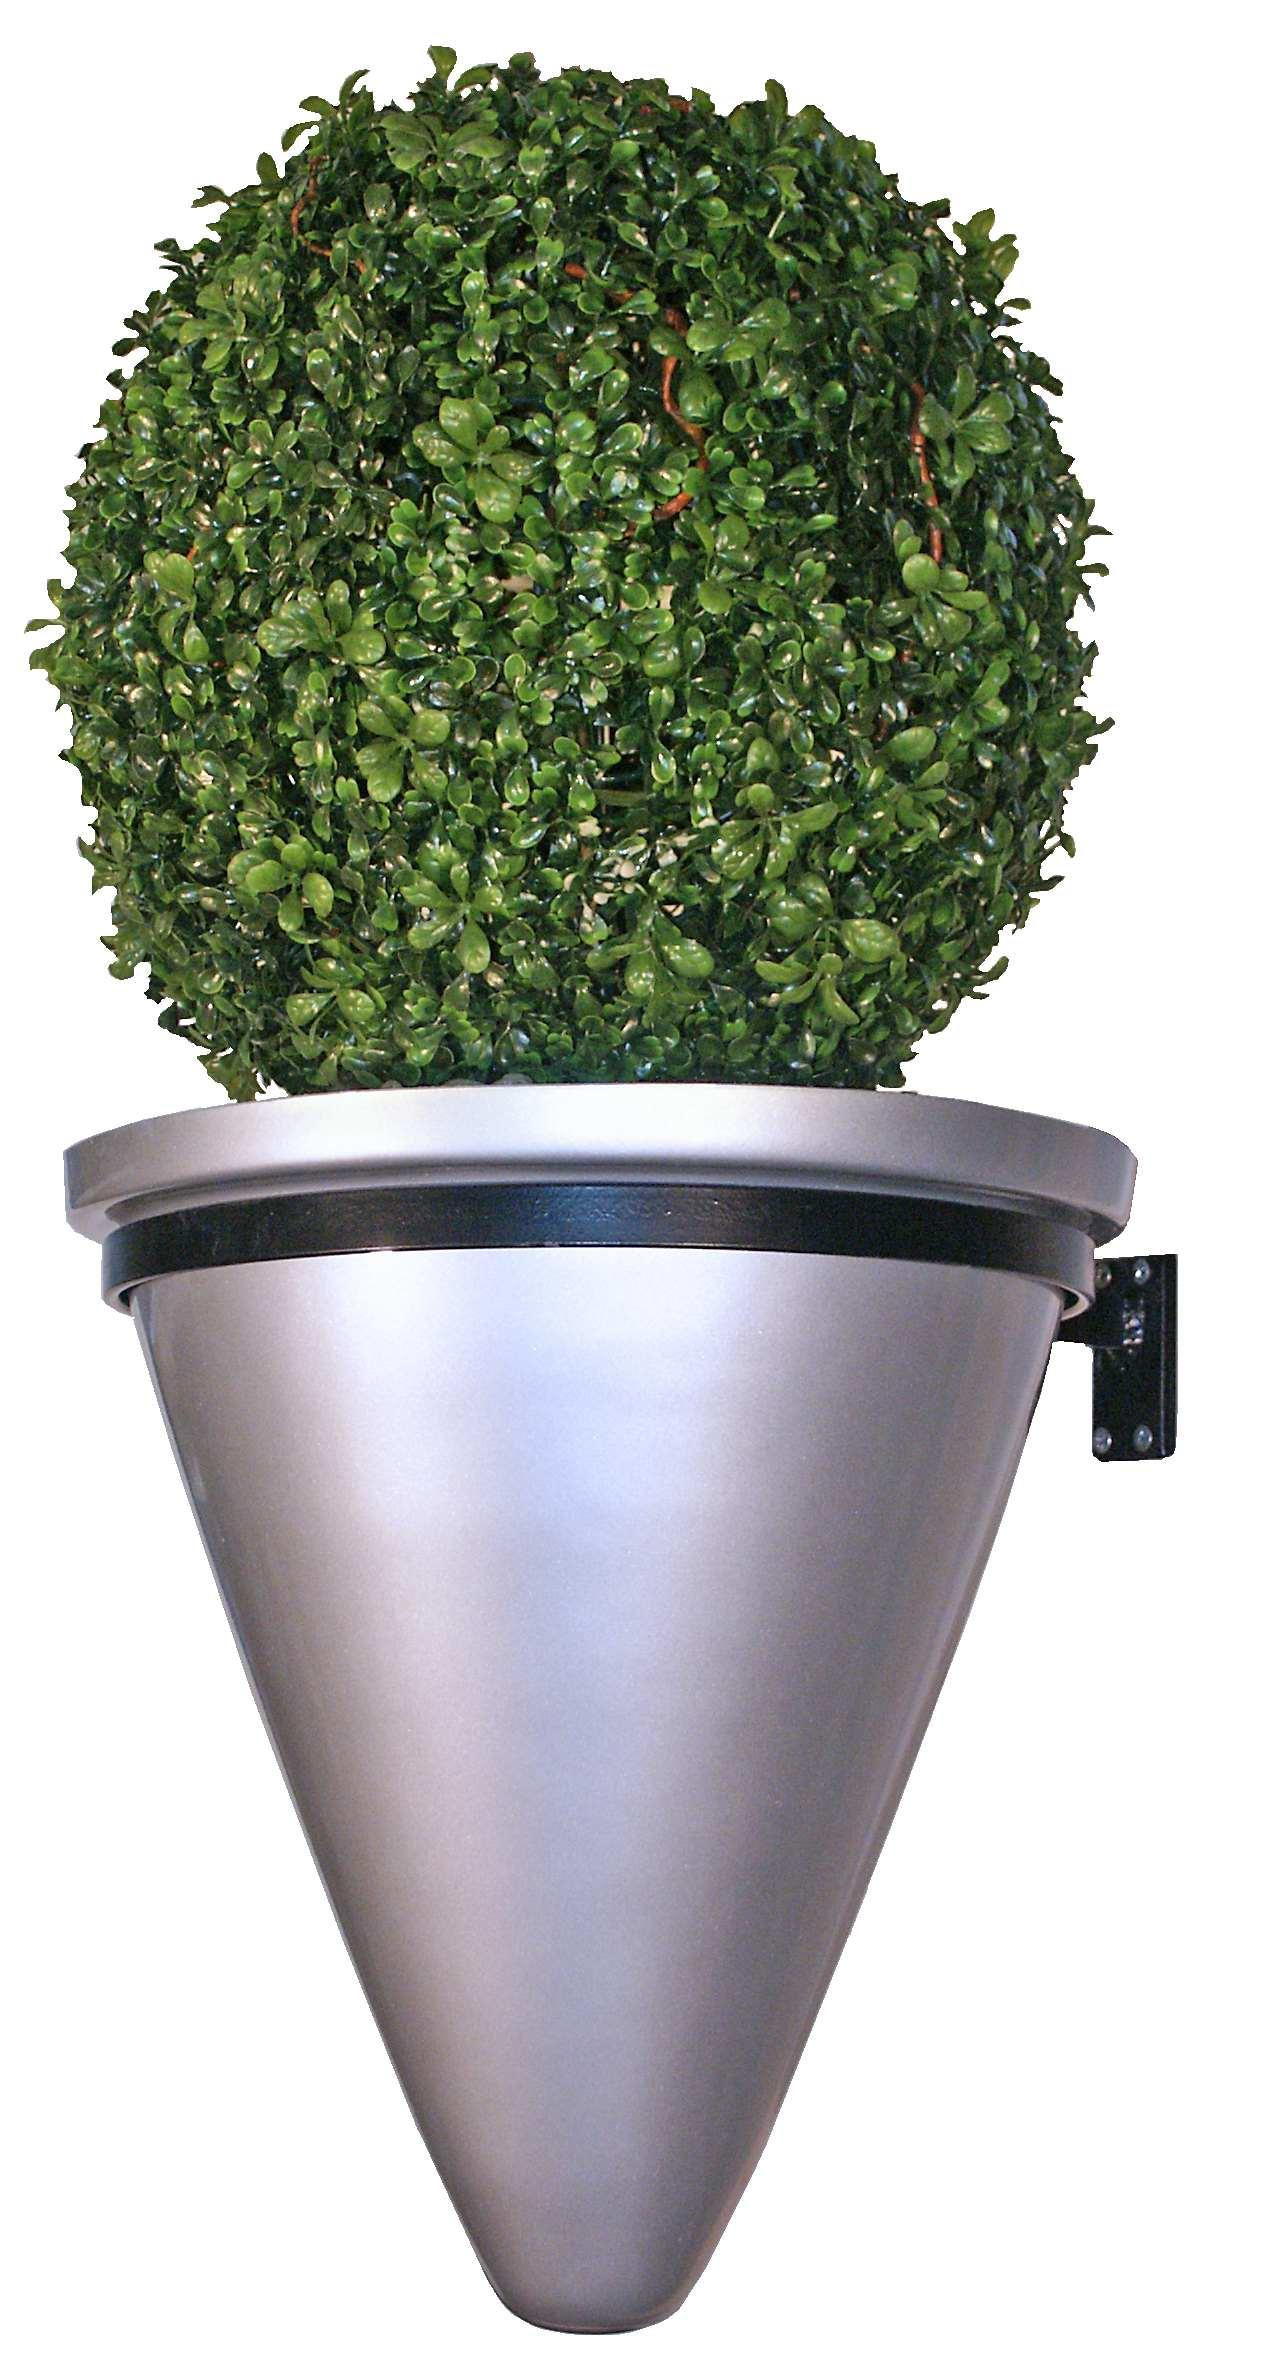 fibreglass_planter_wall_moounted_conical_planter_modern_contemporary_garden_outdoor_weatherproof_uk_kent_bespoke